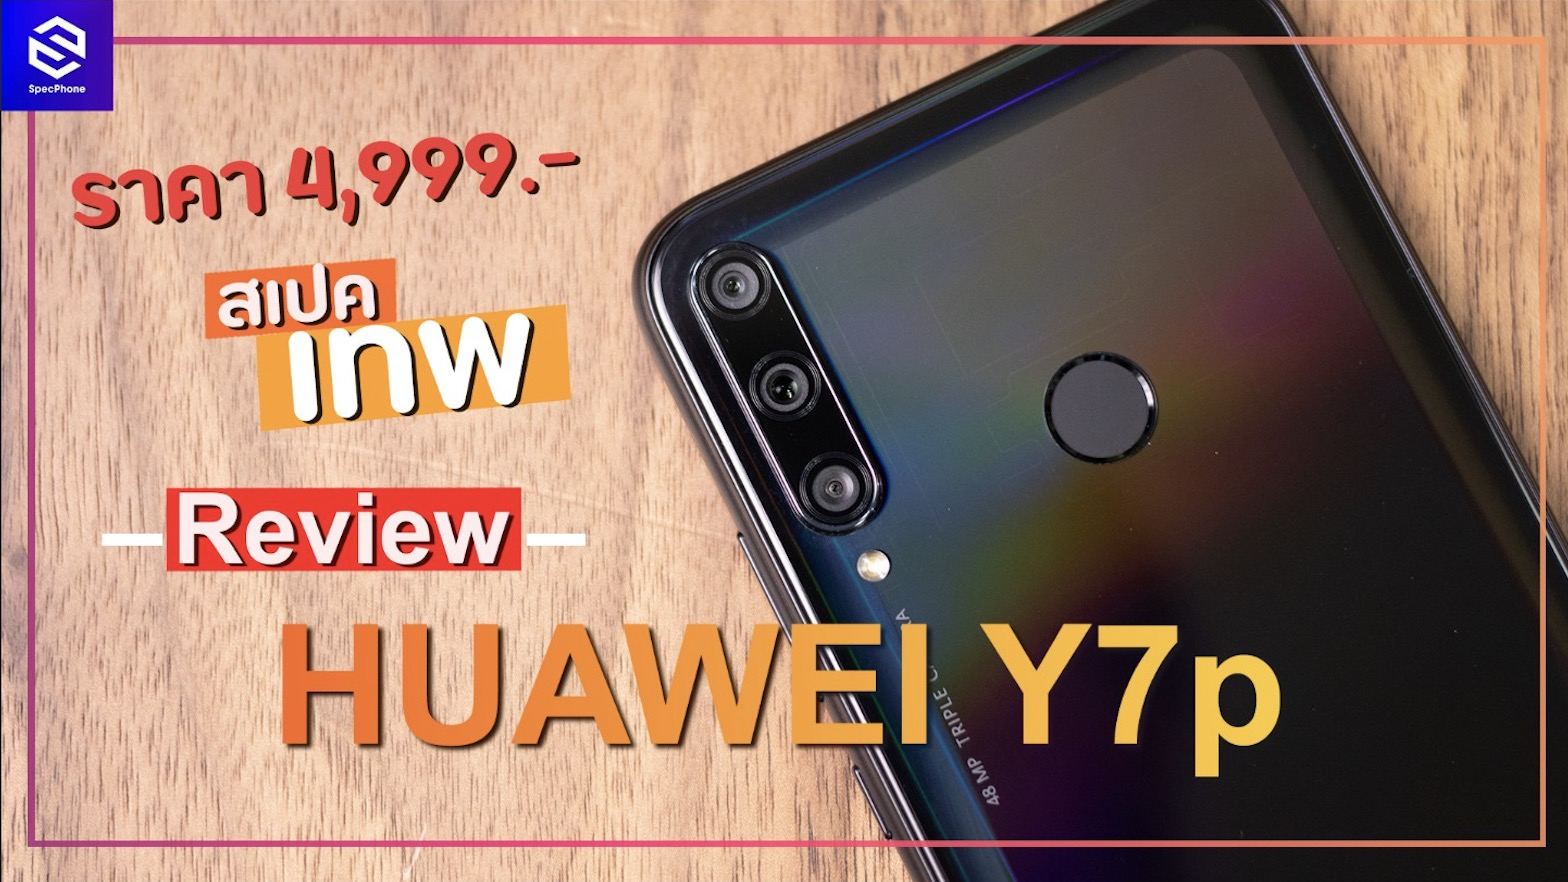 Video-Review-HUAWEI-Y7p-SpecPhone